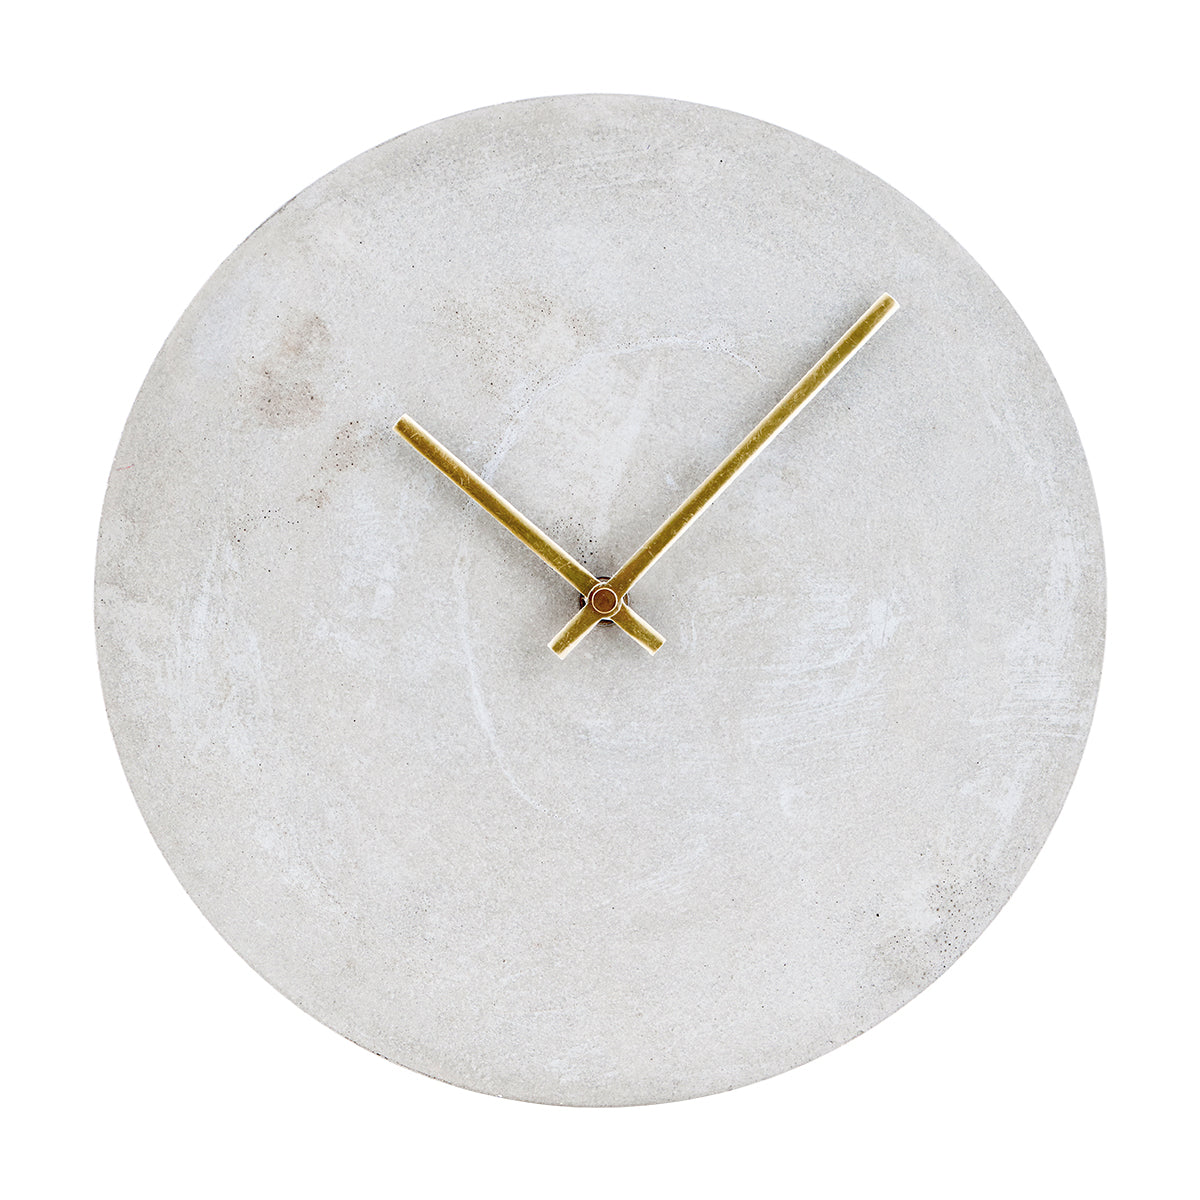 this-industrial-style-concrete-clock-with-brass-handles-is-available-to-buy-in-the-warehouse-home-shop